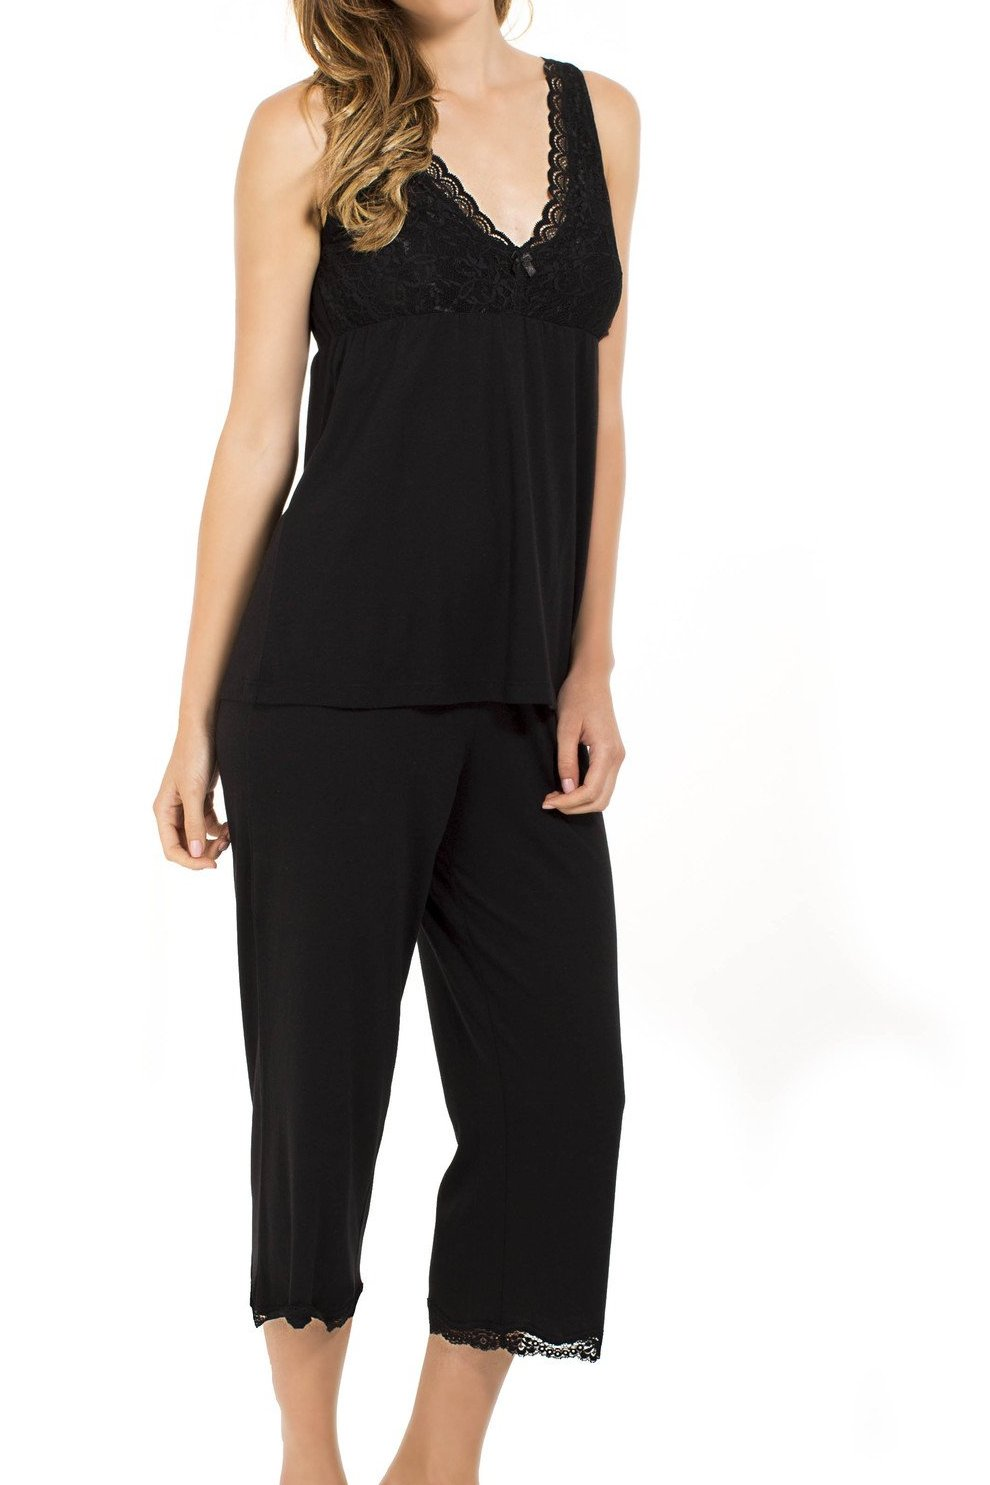 Leslie Wide Tank Camisole, Cropped Pant PJ Set - Sales Rack